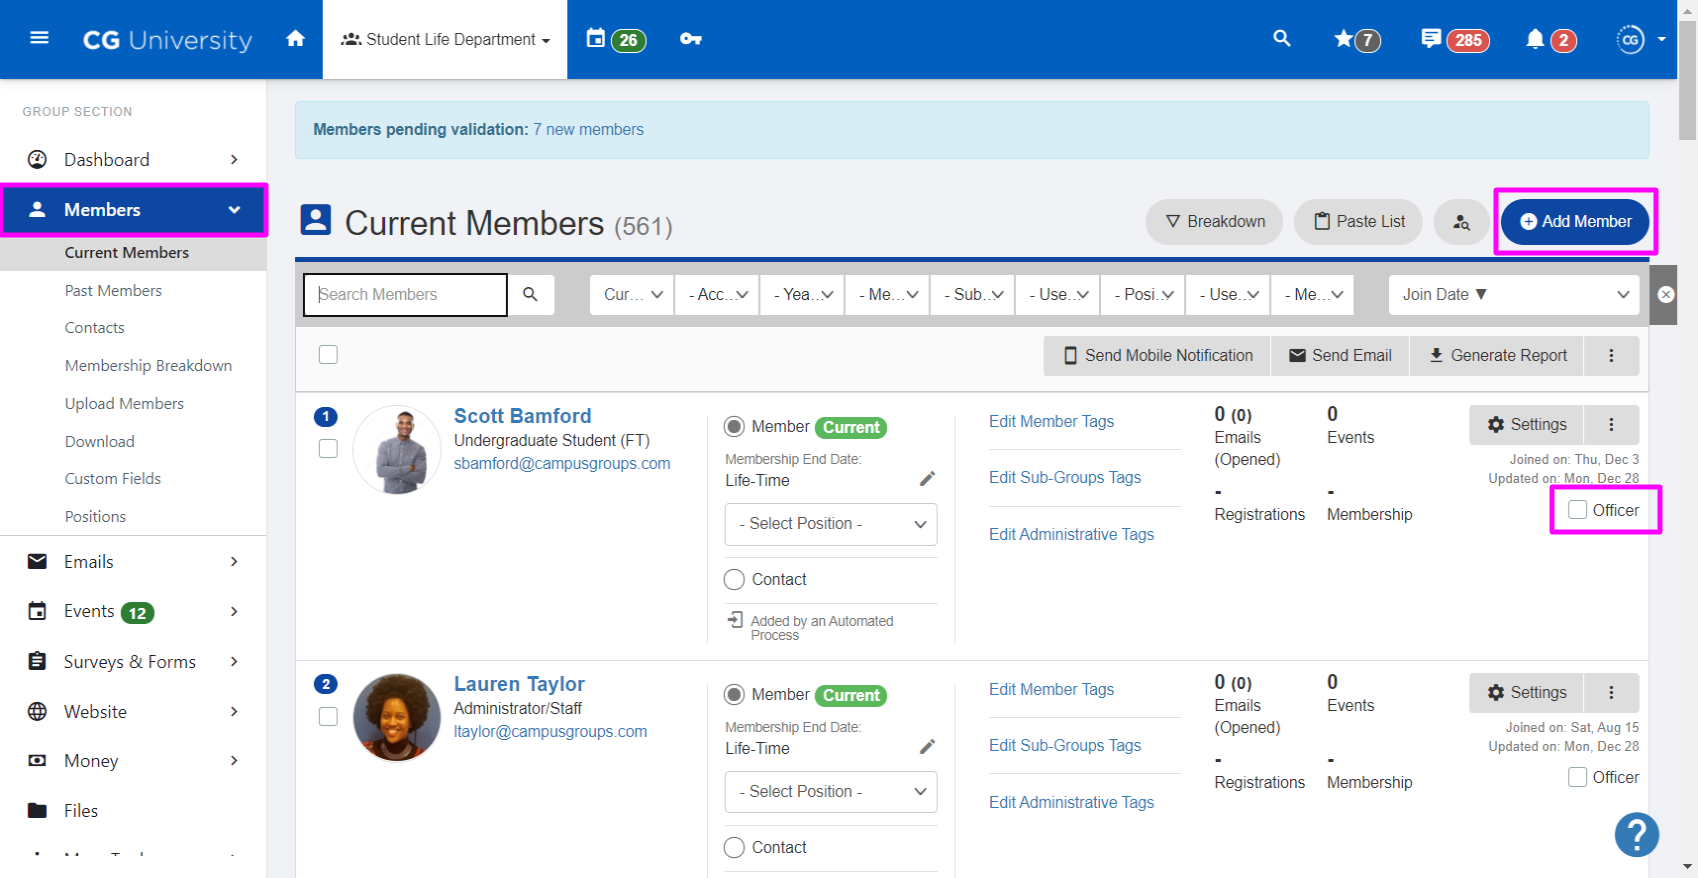 A screenshot highlighting the Officer checkbox on the Members page